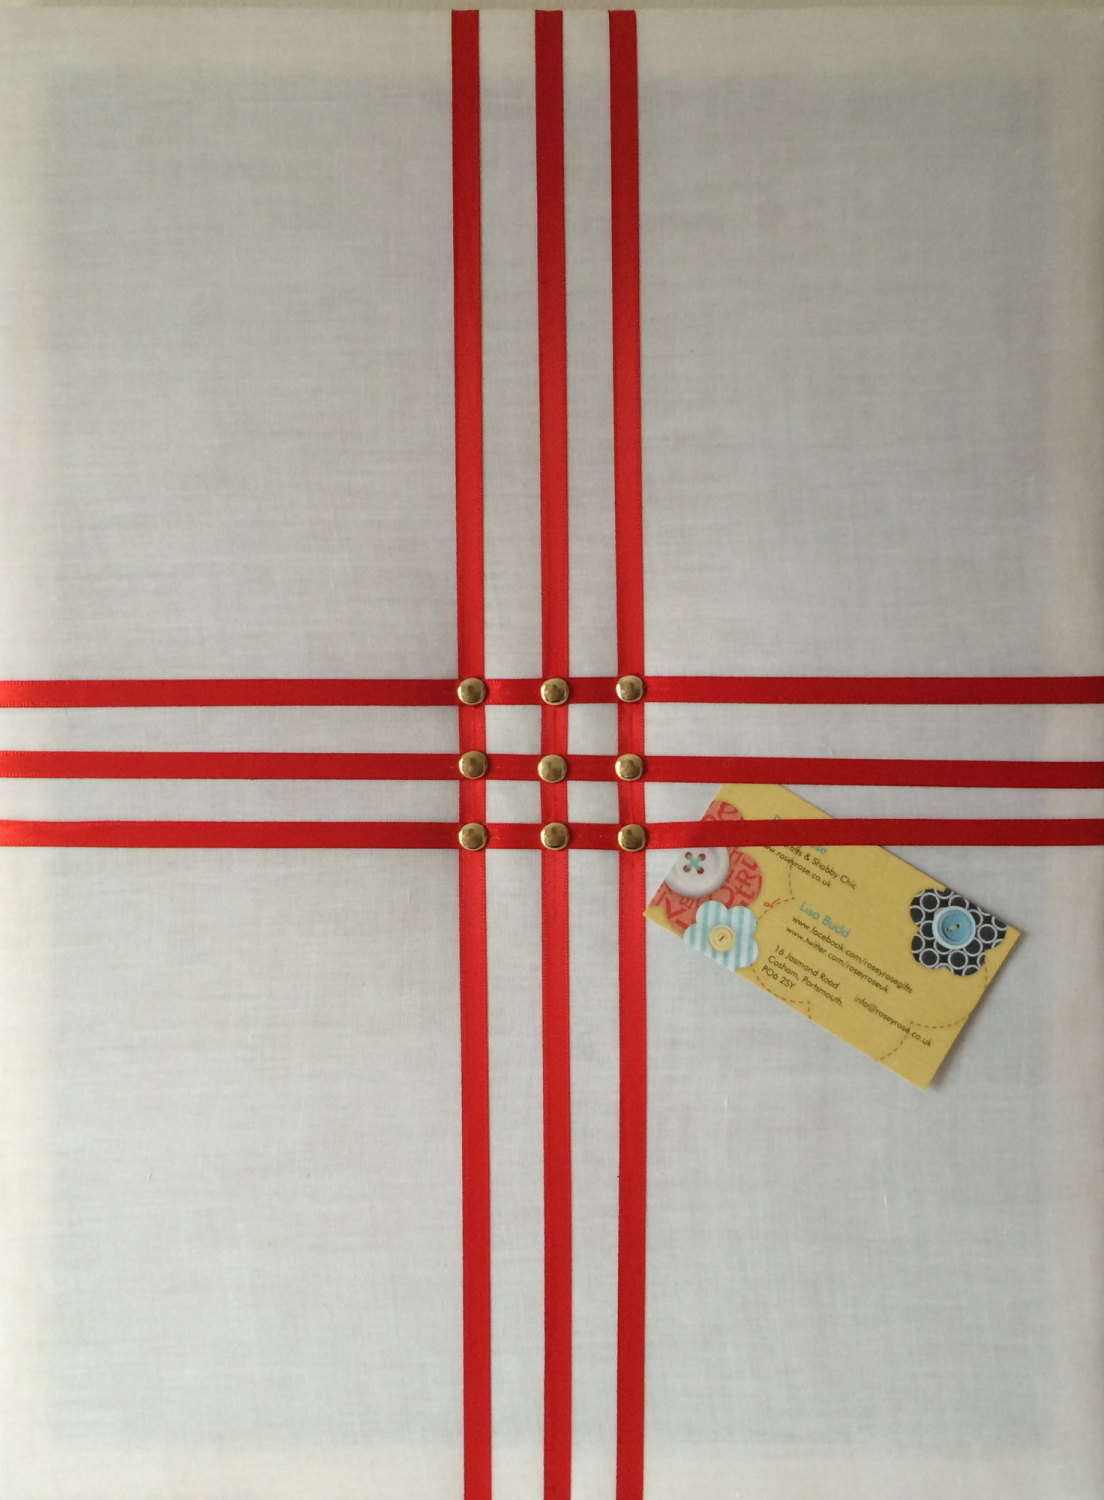 Medium 40x30cm White & Red England St George's Flag World Cup Brazil Footba